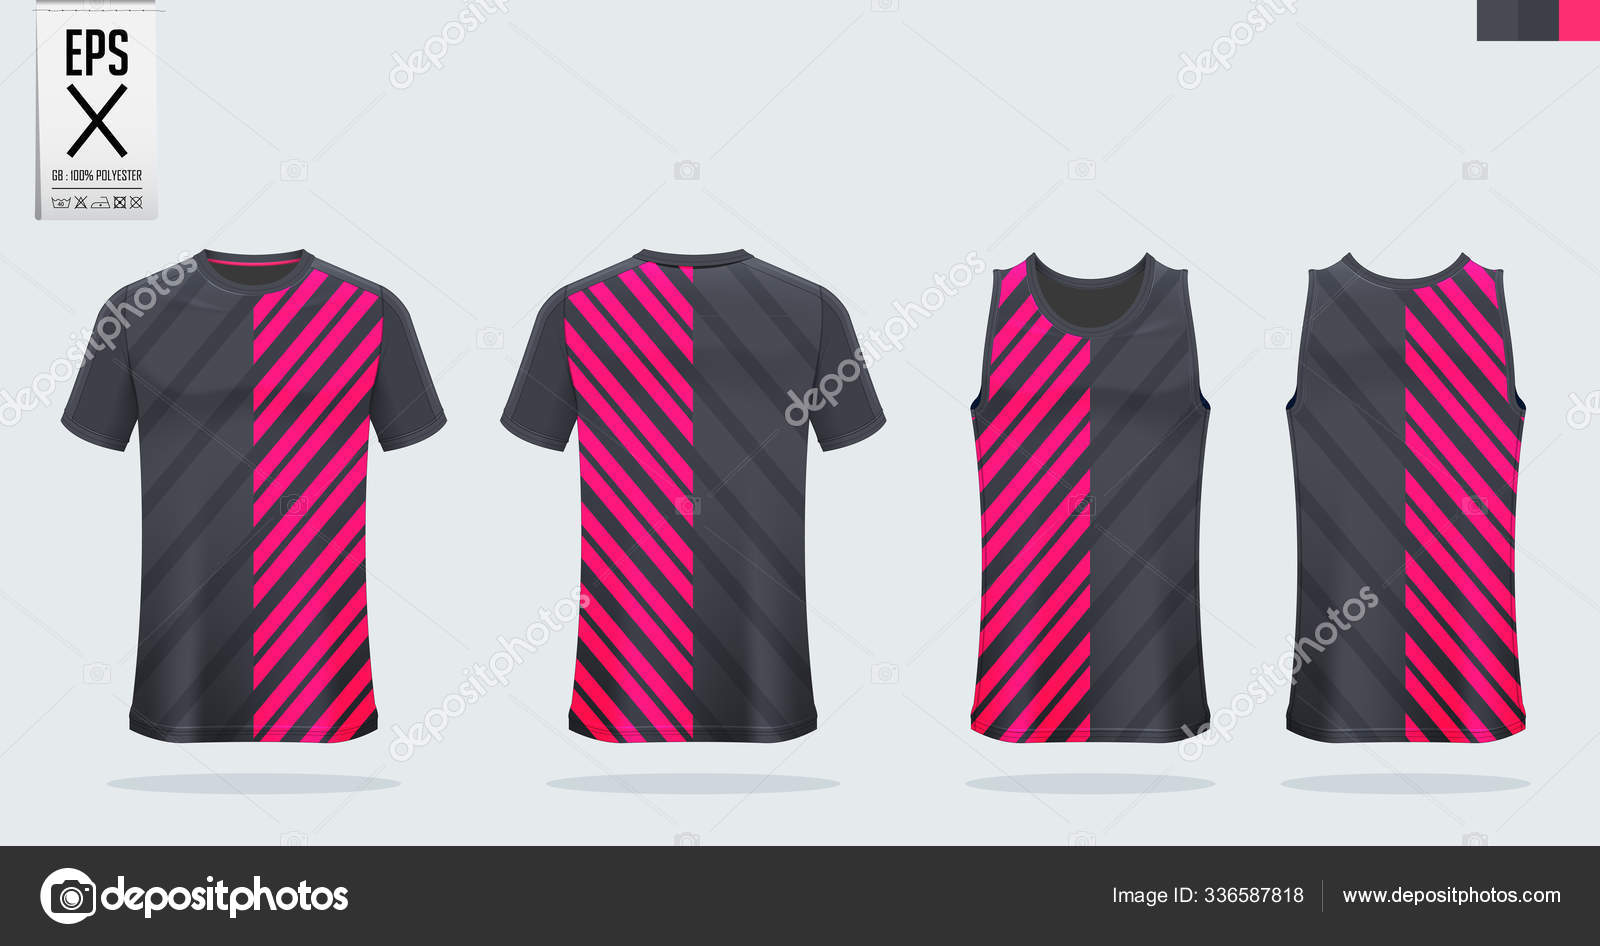 Black Pink T Shirt Sport Mockup Template Design For Soccer Jersey Football Kit Tank Top For Basketball Jersey And Running Singlet Sport Uniform In Front View And Back View Vector Stock Vector C